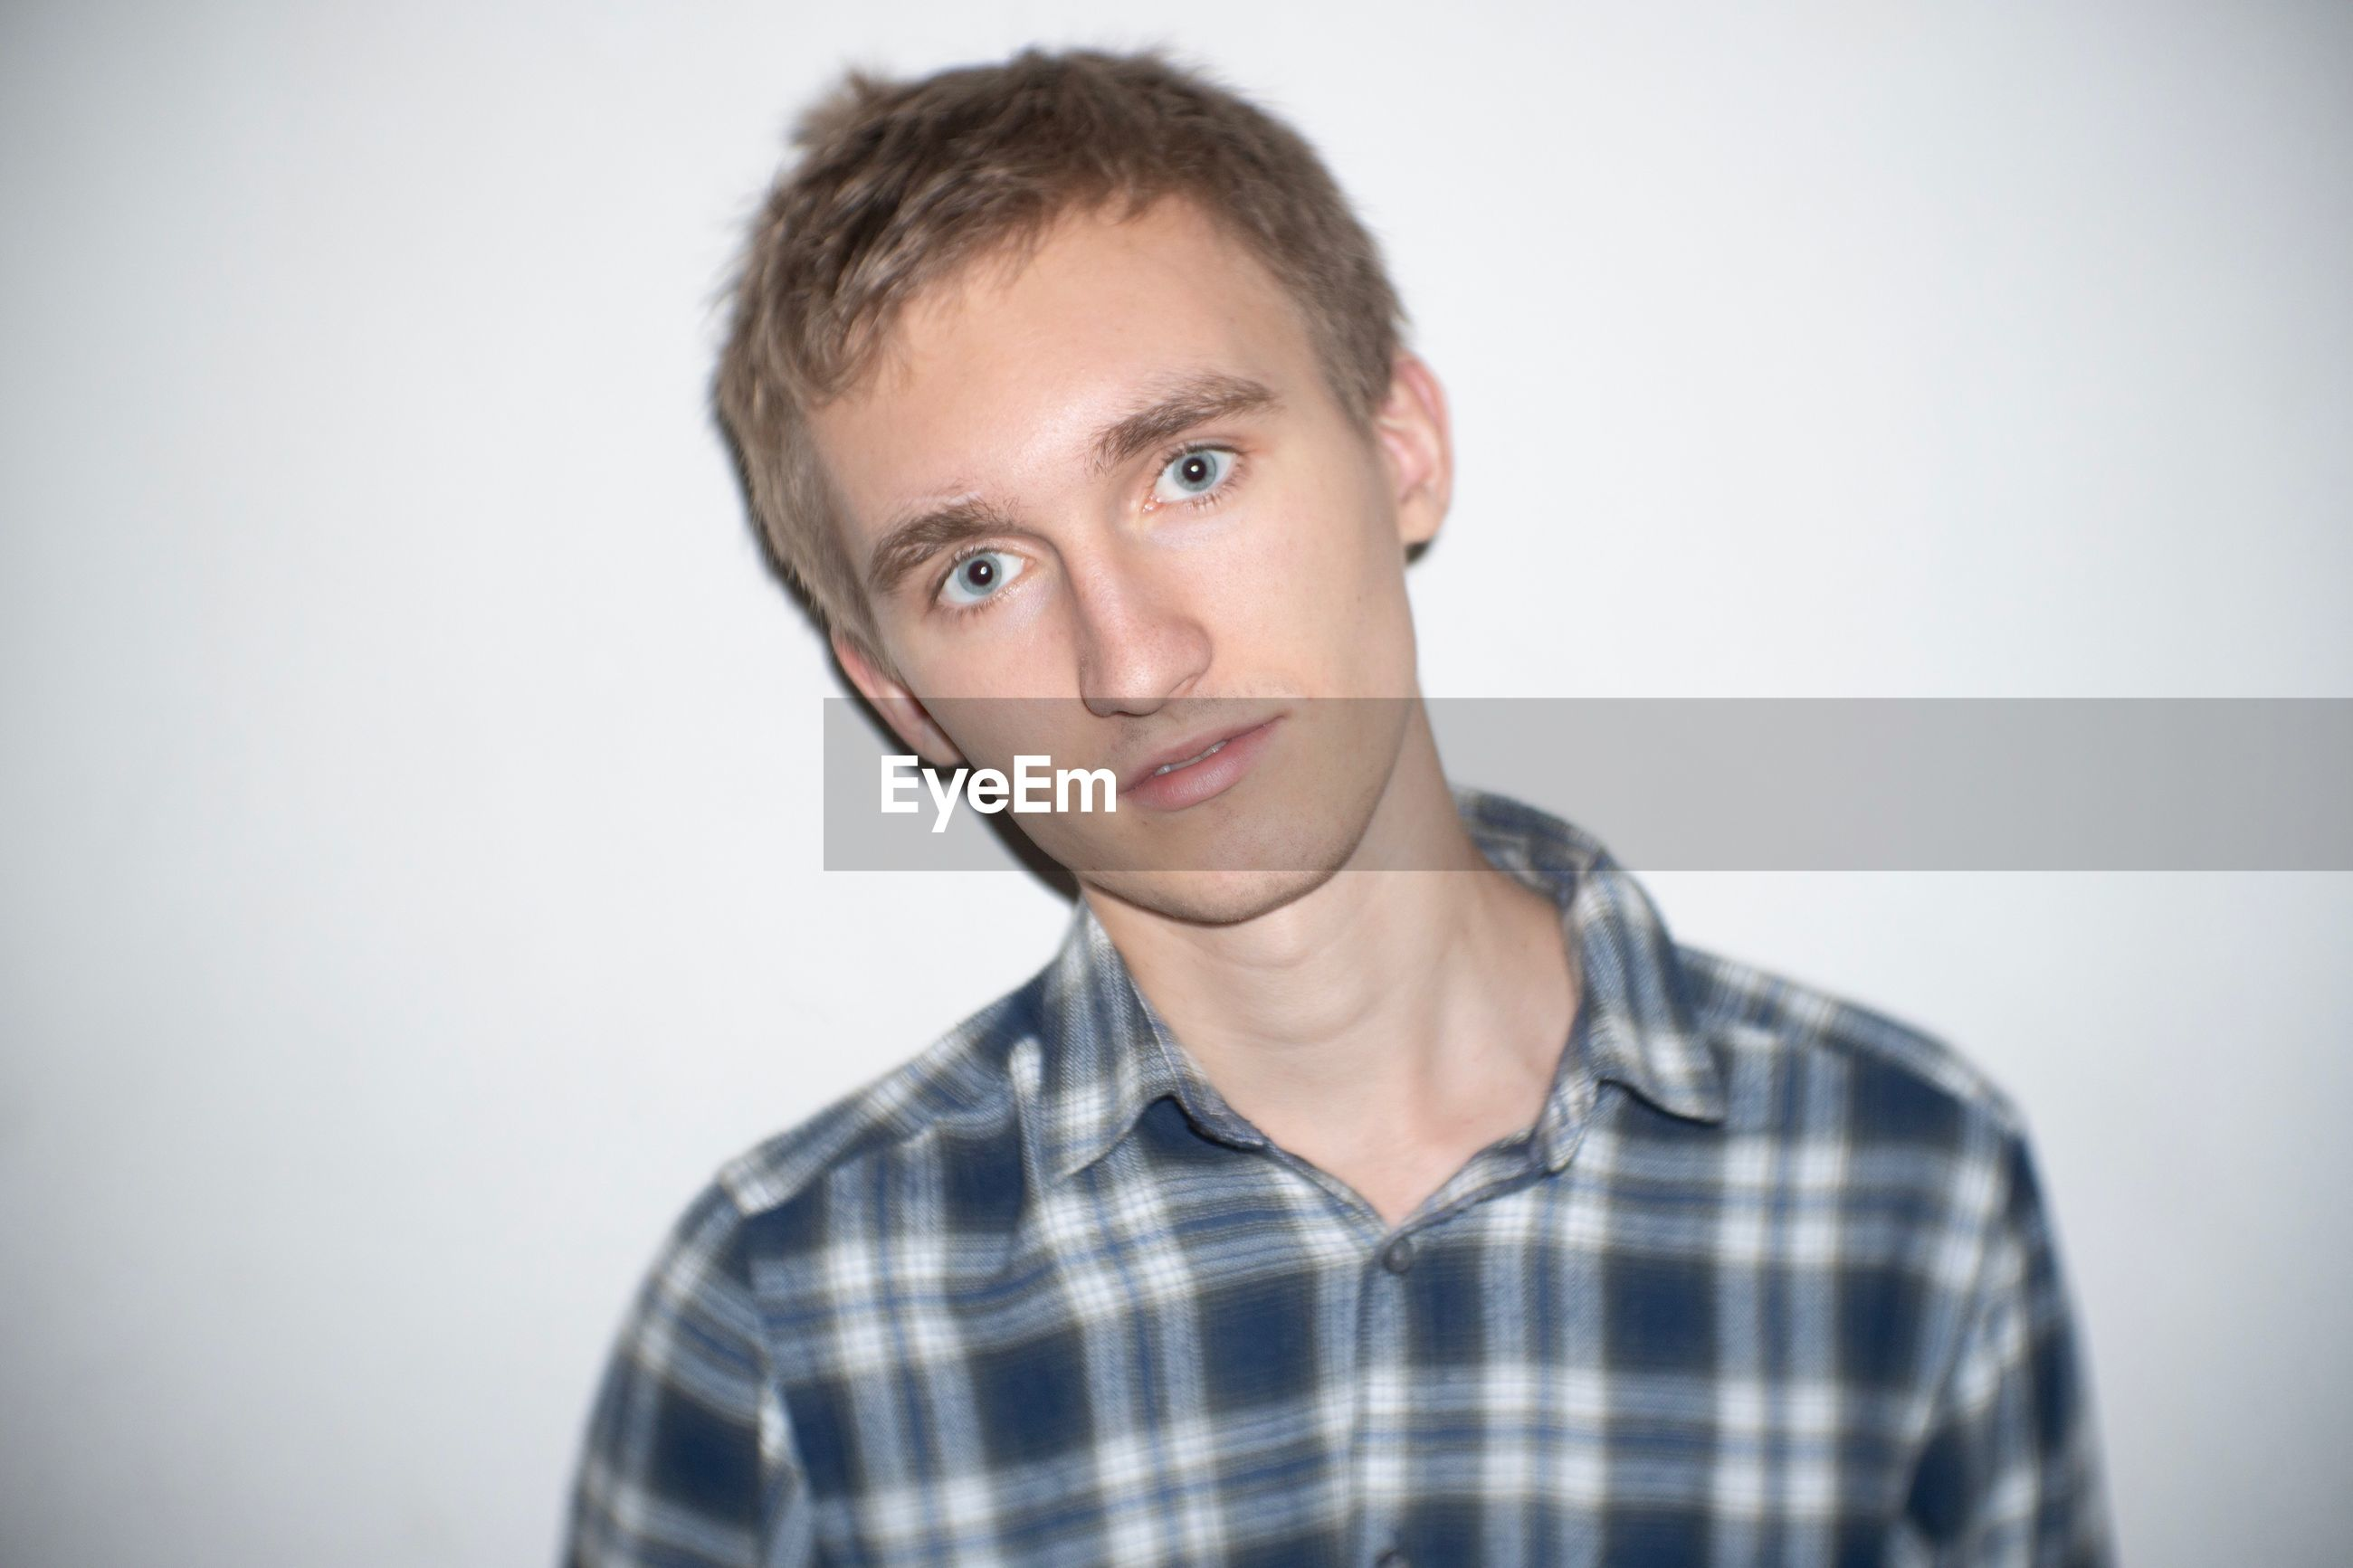 Portrait of young man against white background